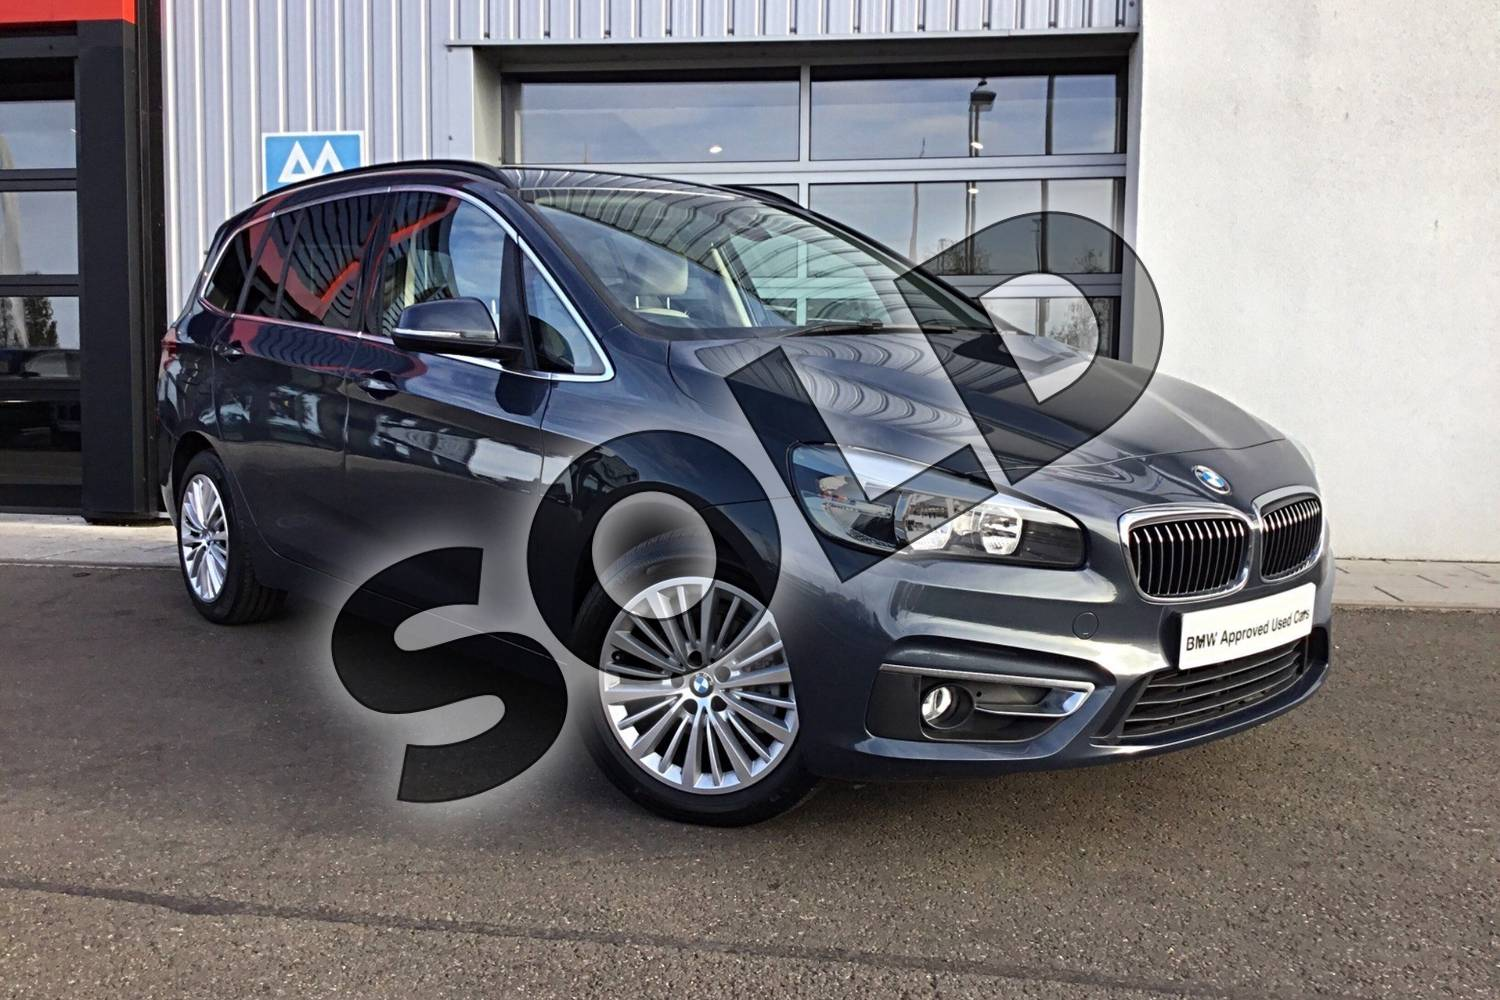 2015 BMW 2 Series Diesel Gran Tourer Diesel Gran Tourer 216d Luxury 5dr in Atlantic Grey at Listers King's Lynn (BMW)